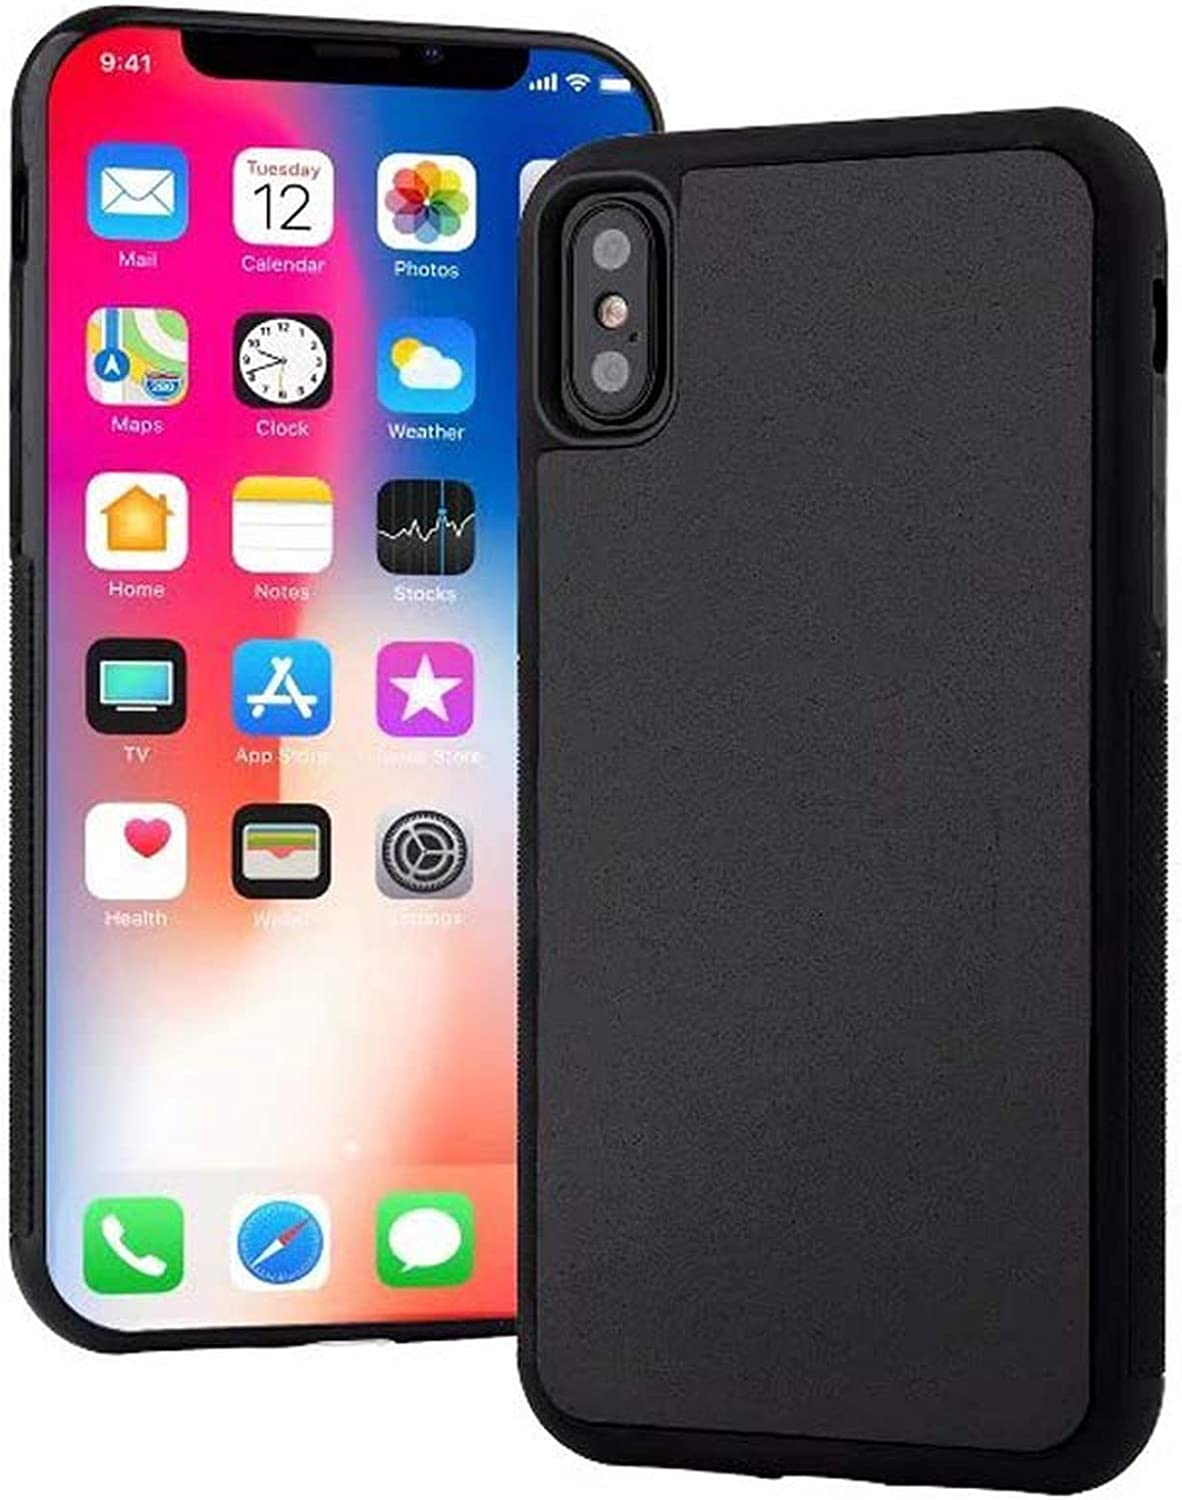 360 Degree Full Protection Pluto AntiGravity for iPhone Xs Max 6 7 8 Plus 11 Pro Max SE Magical Magic Nano Adsorption Shell Soft Silicone Mobile Phone Case